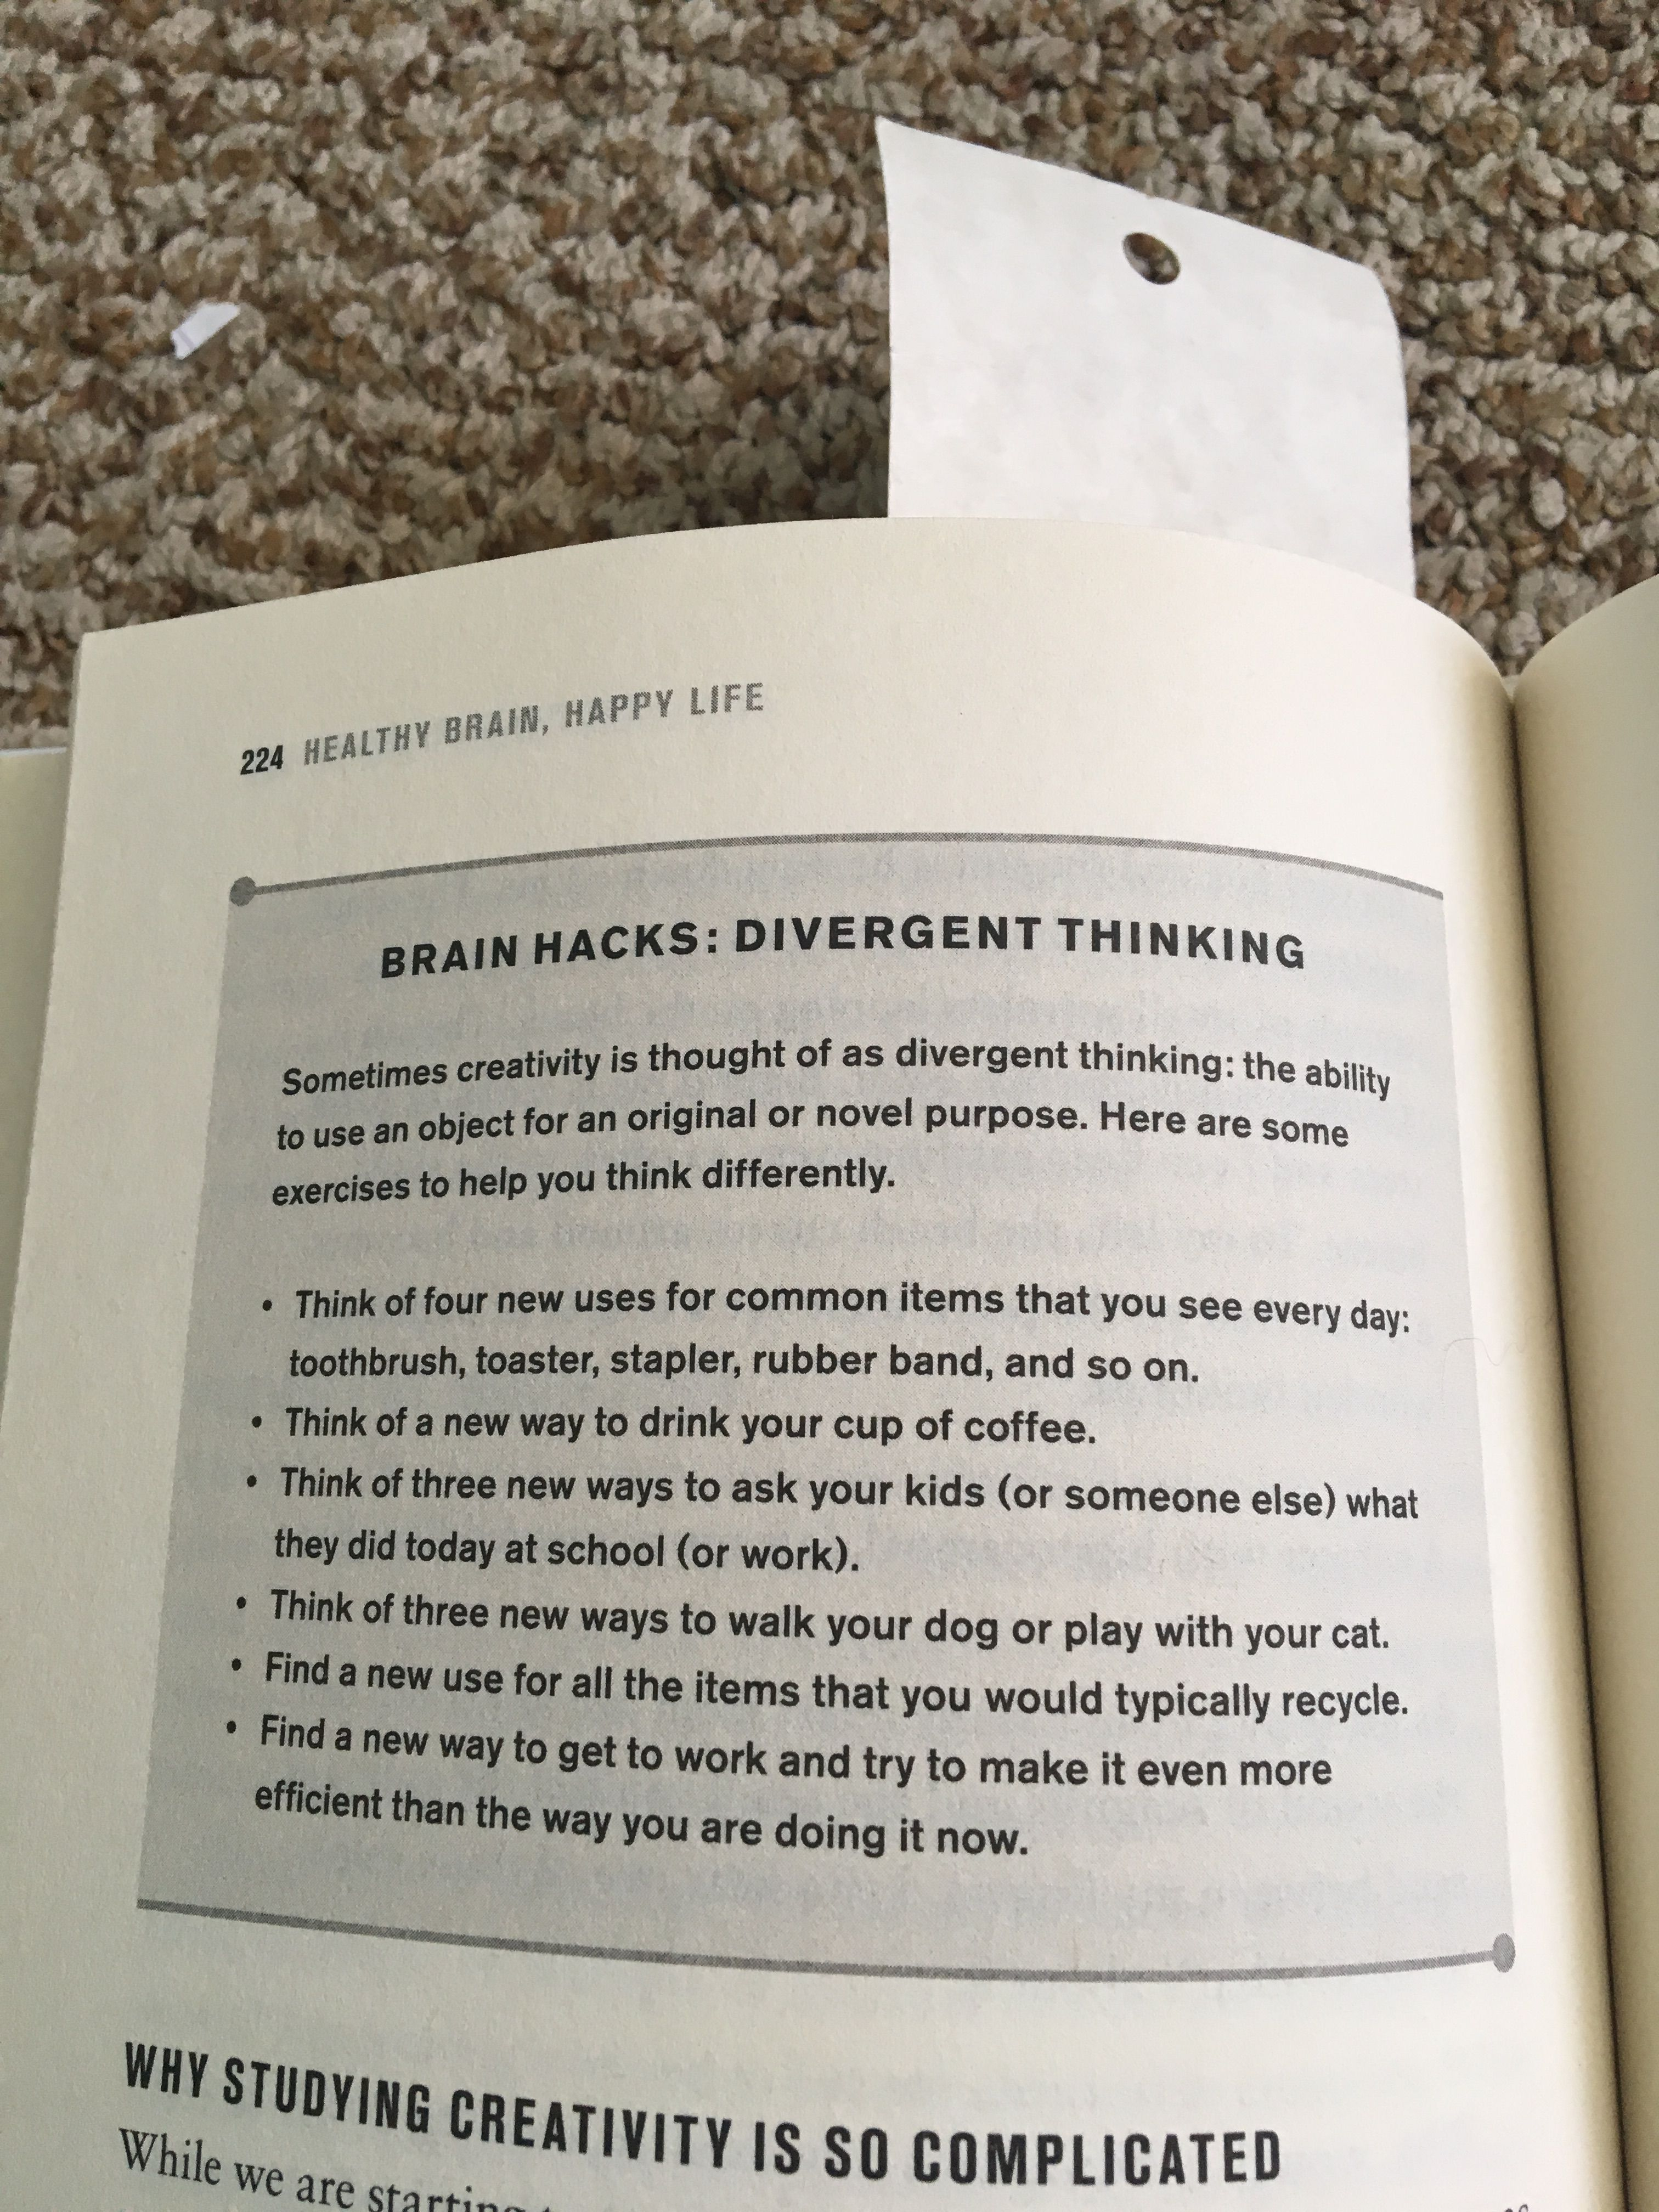 Pin By Tal On Neuroscience And Psychology Divergent Thinking Healthy Brain Happy Life